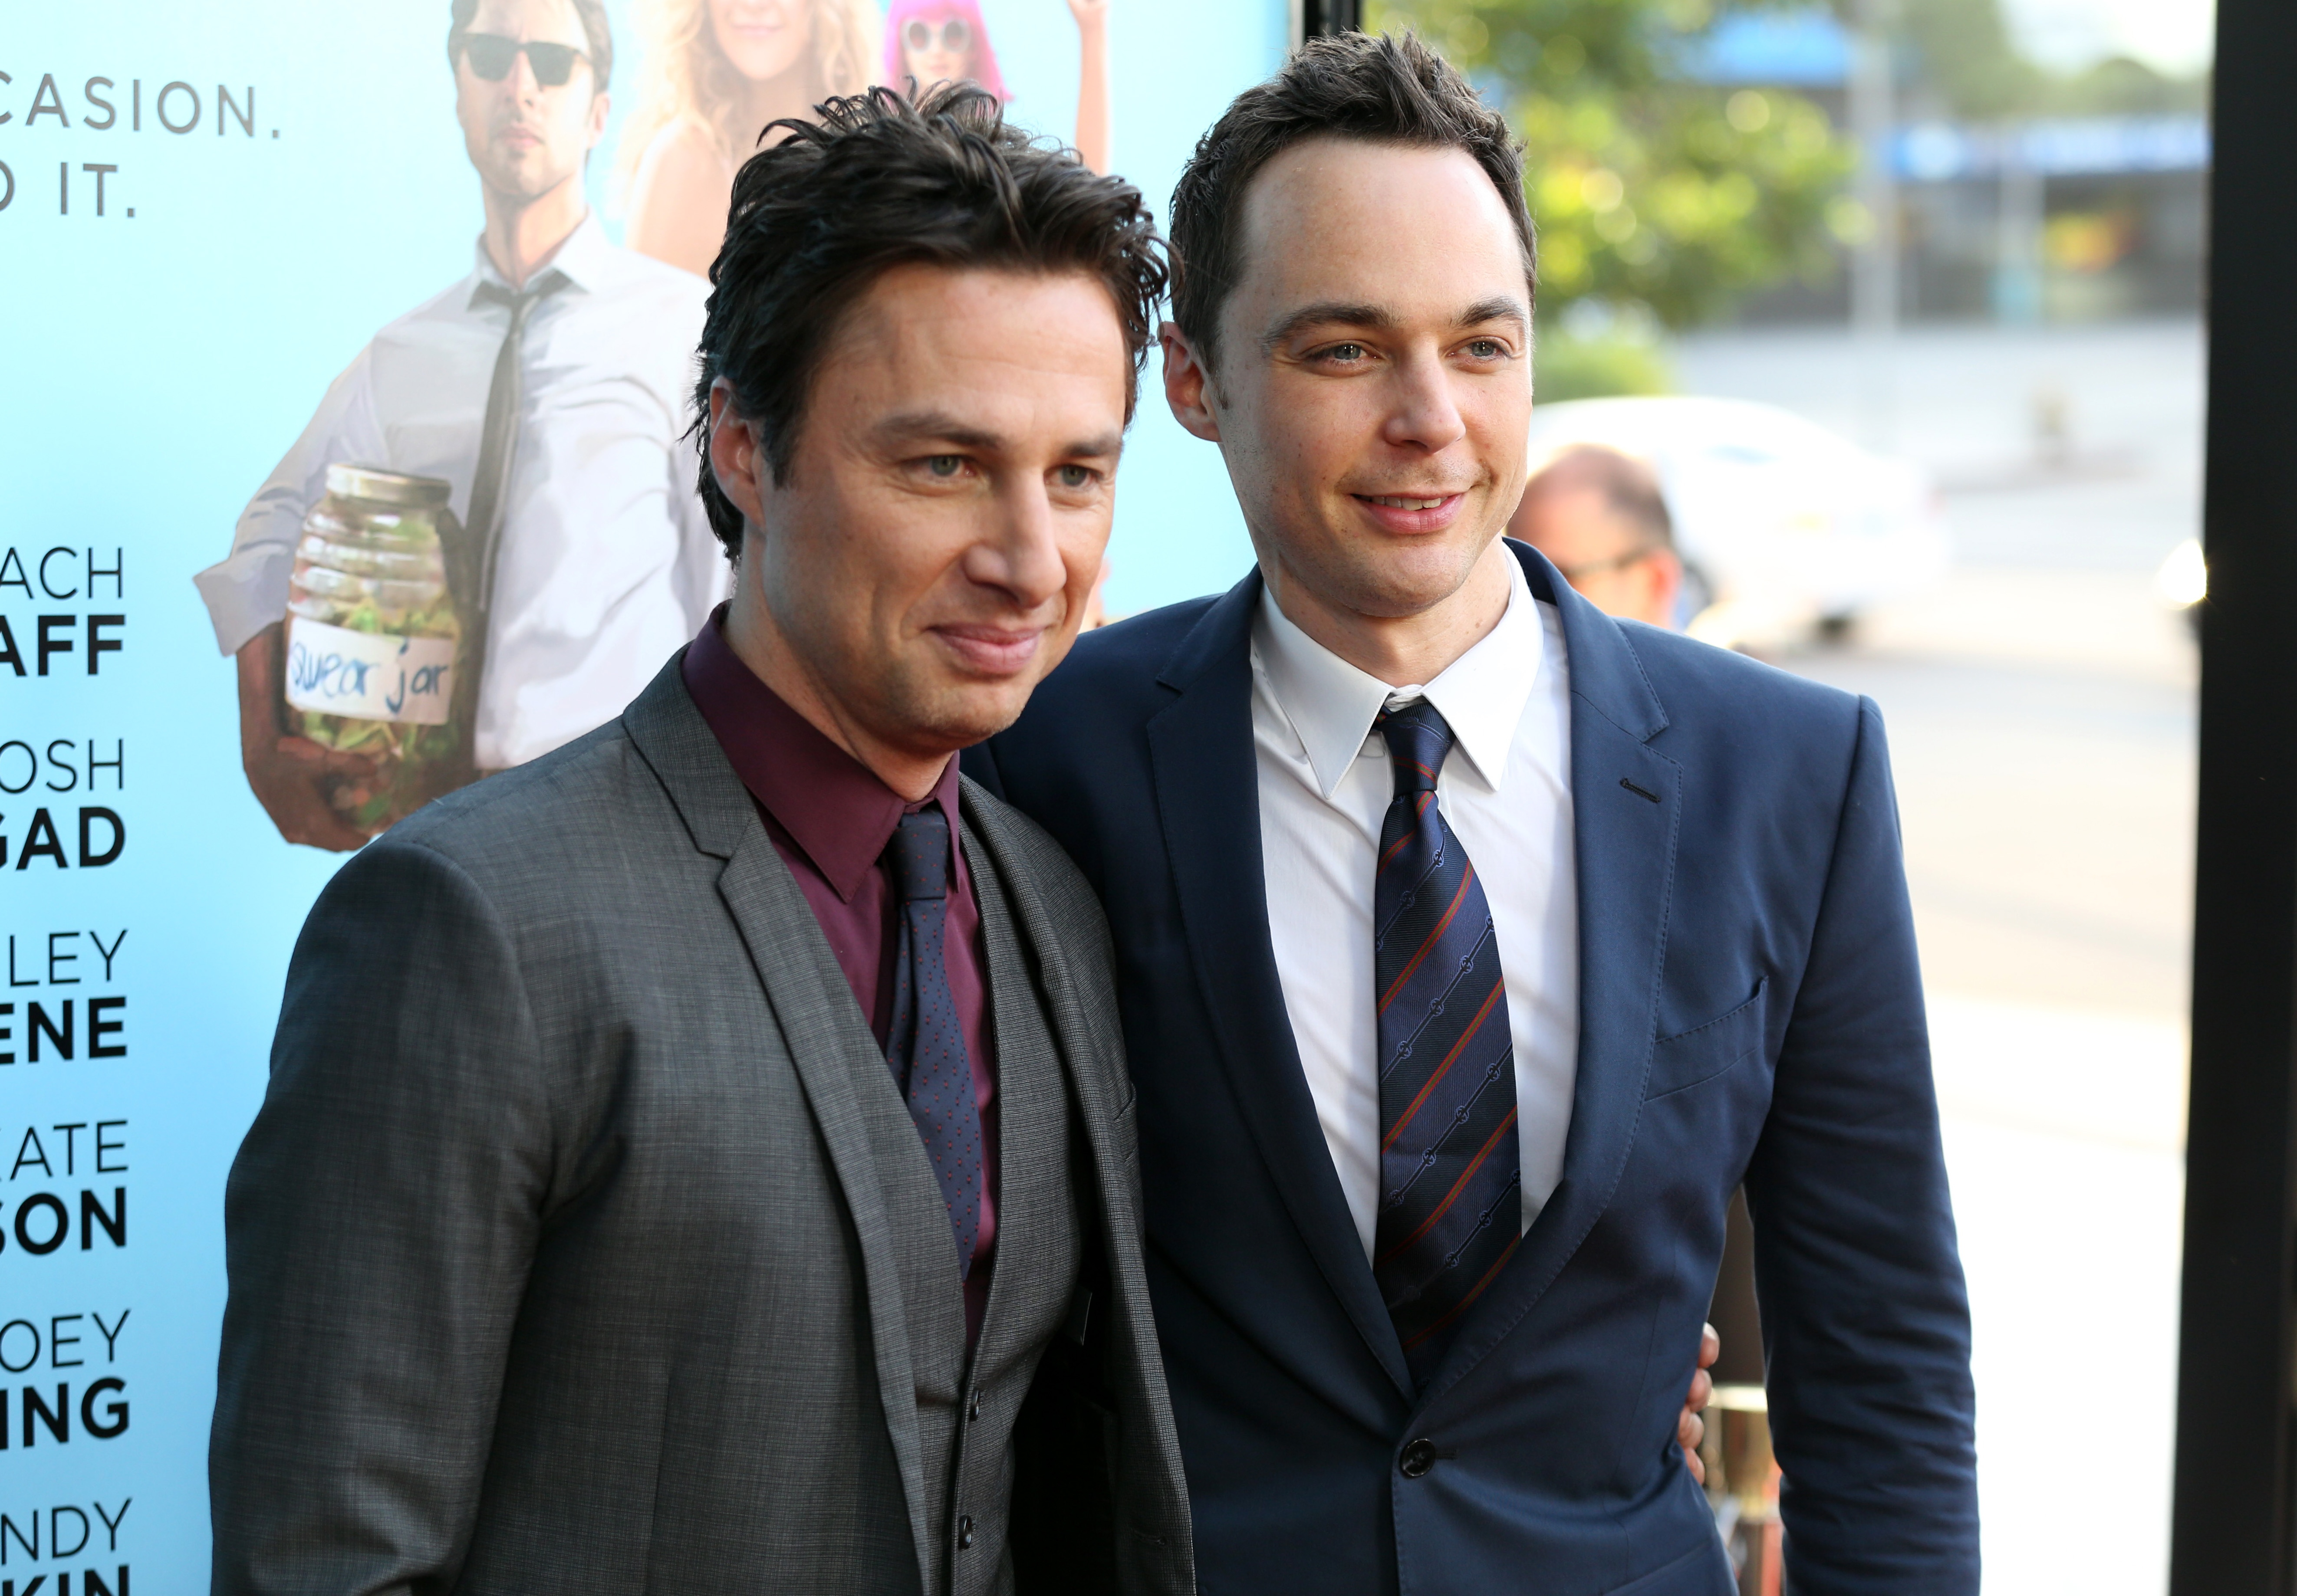 Zach Braf and Jim Parsons at the Los Angeles premiere of Wish I Was Here.